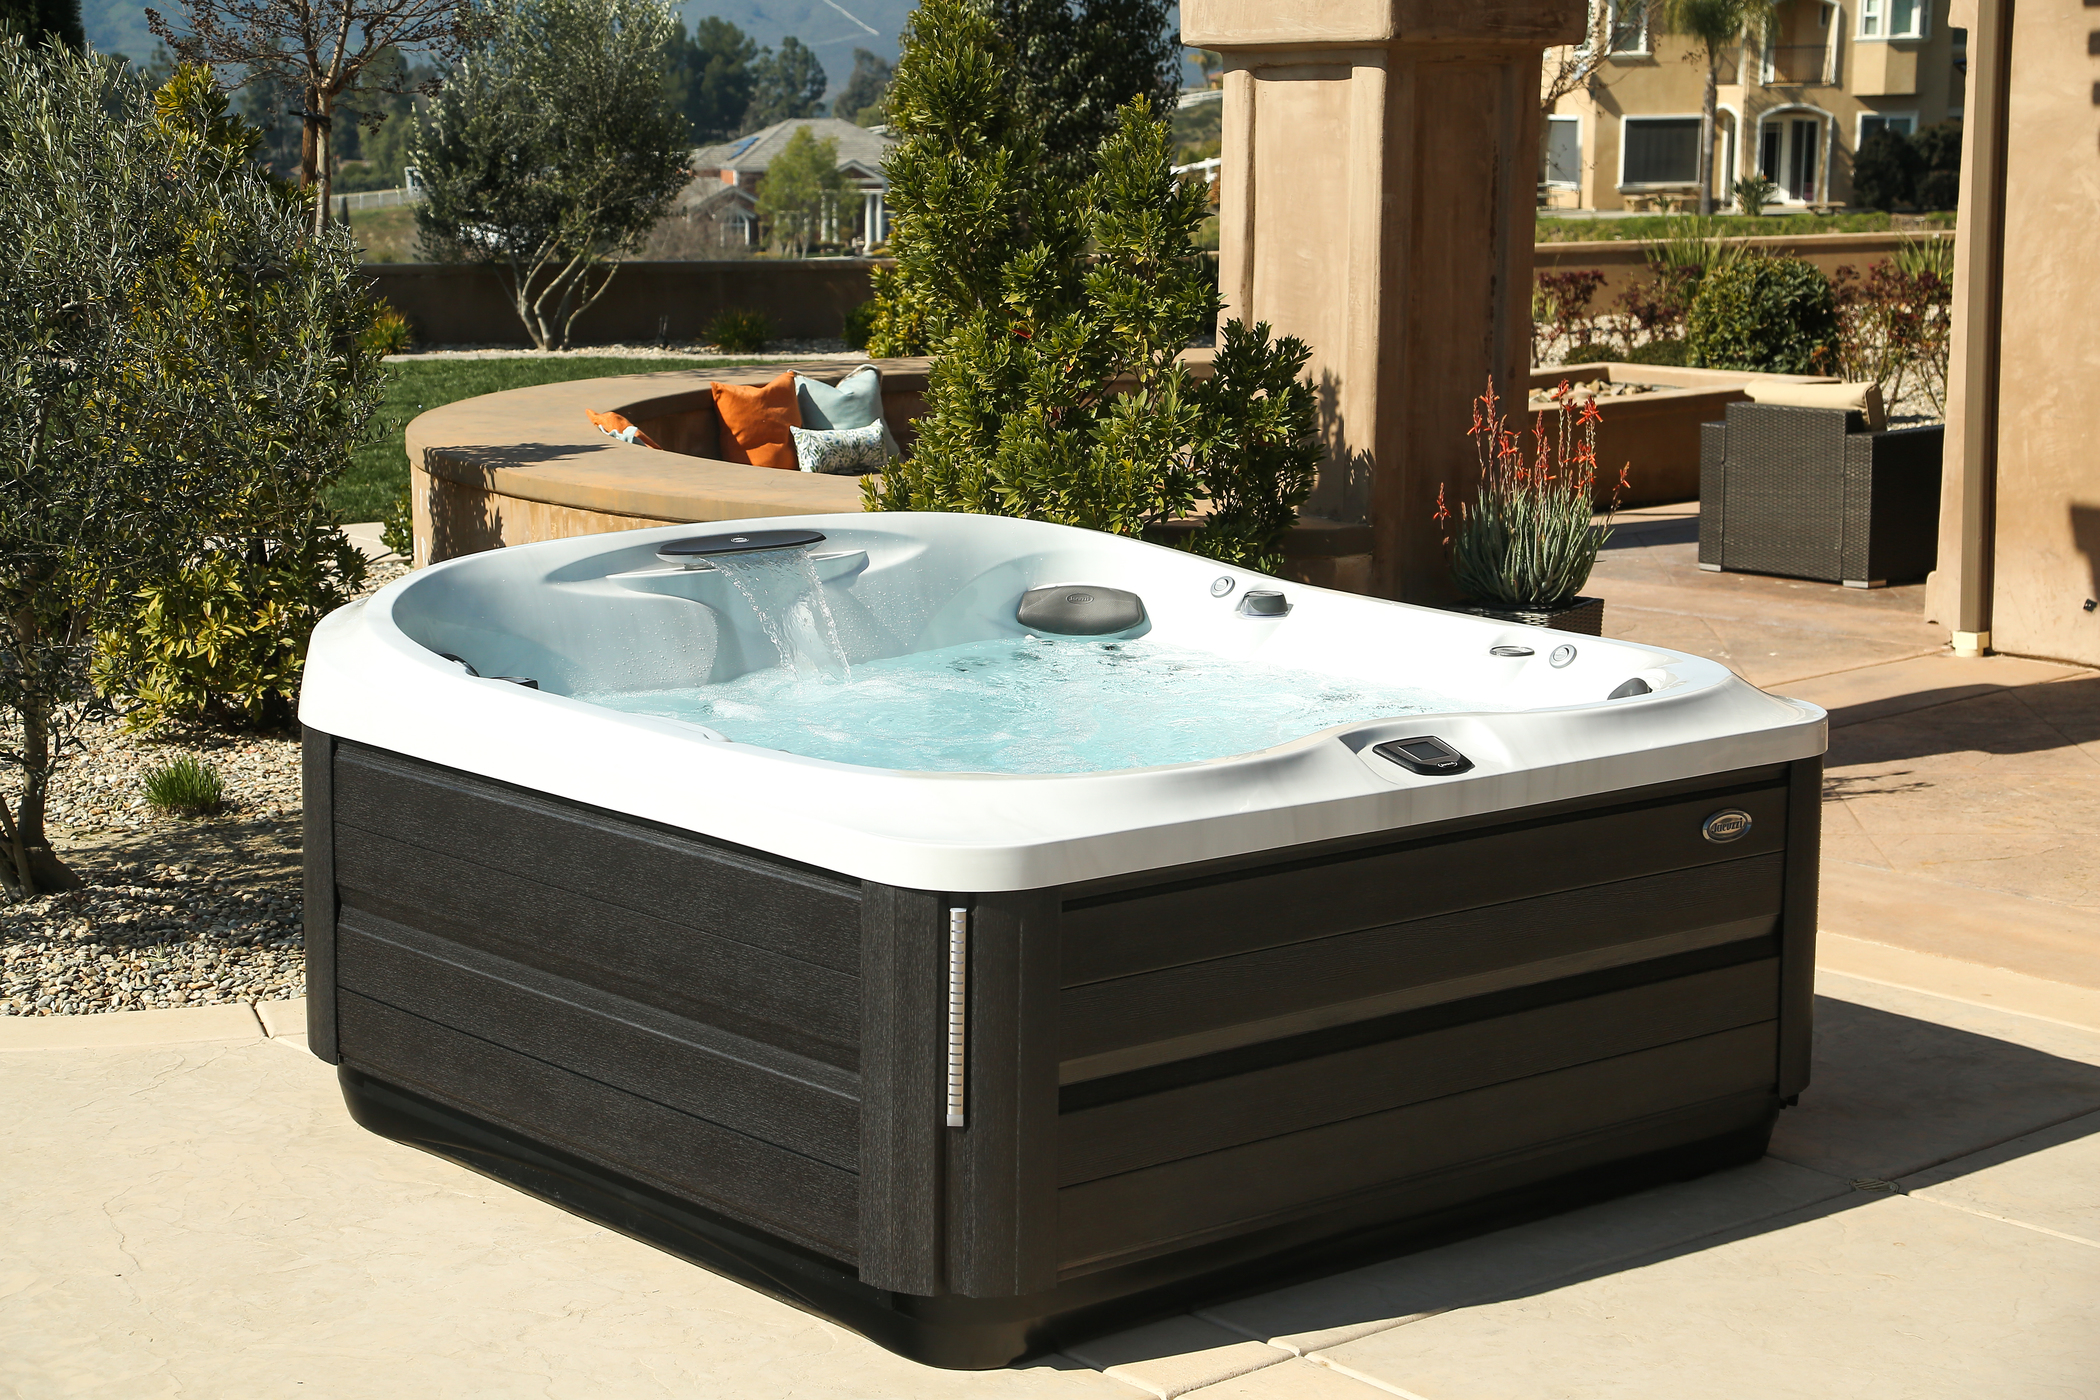 Outdoor Jacuzzi Hot Tub installation.